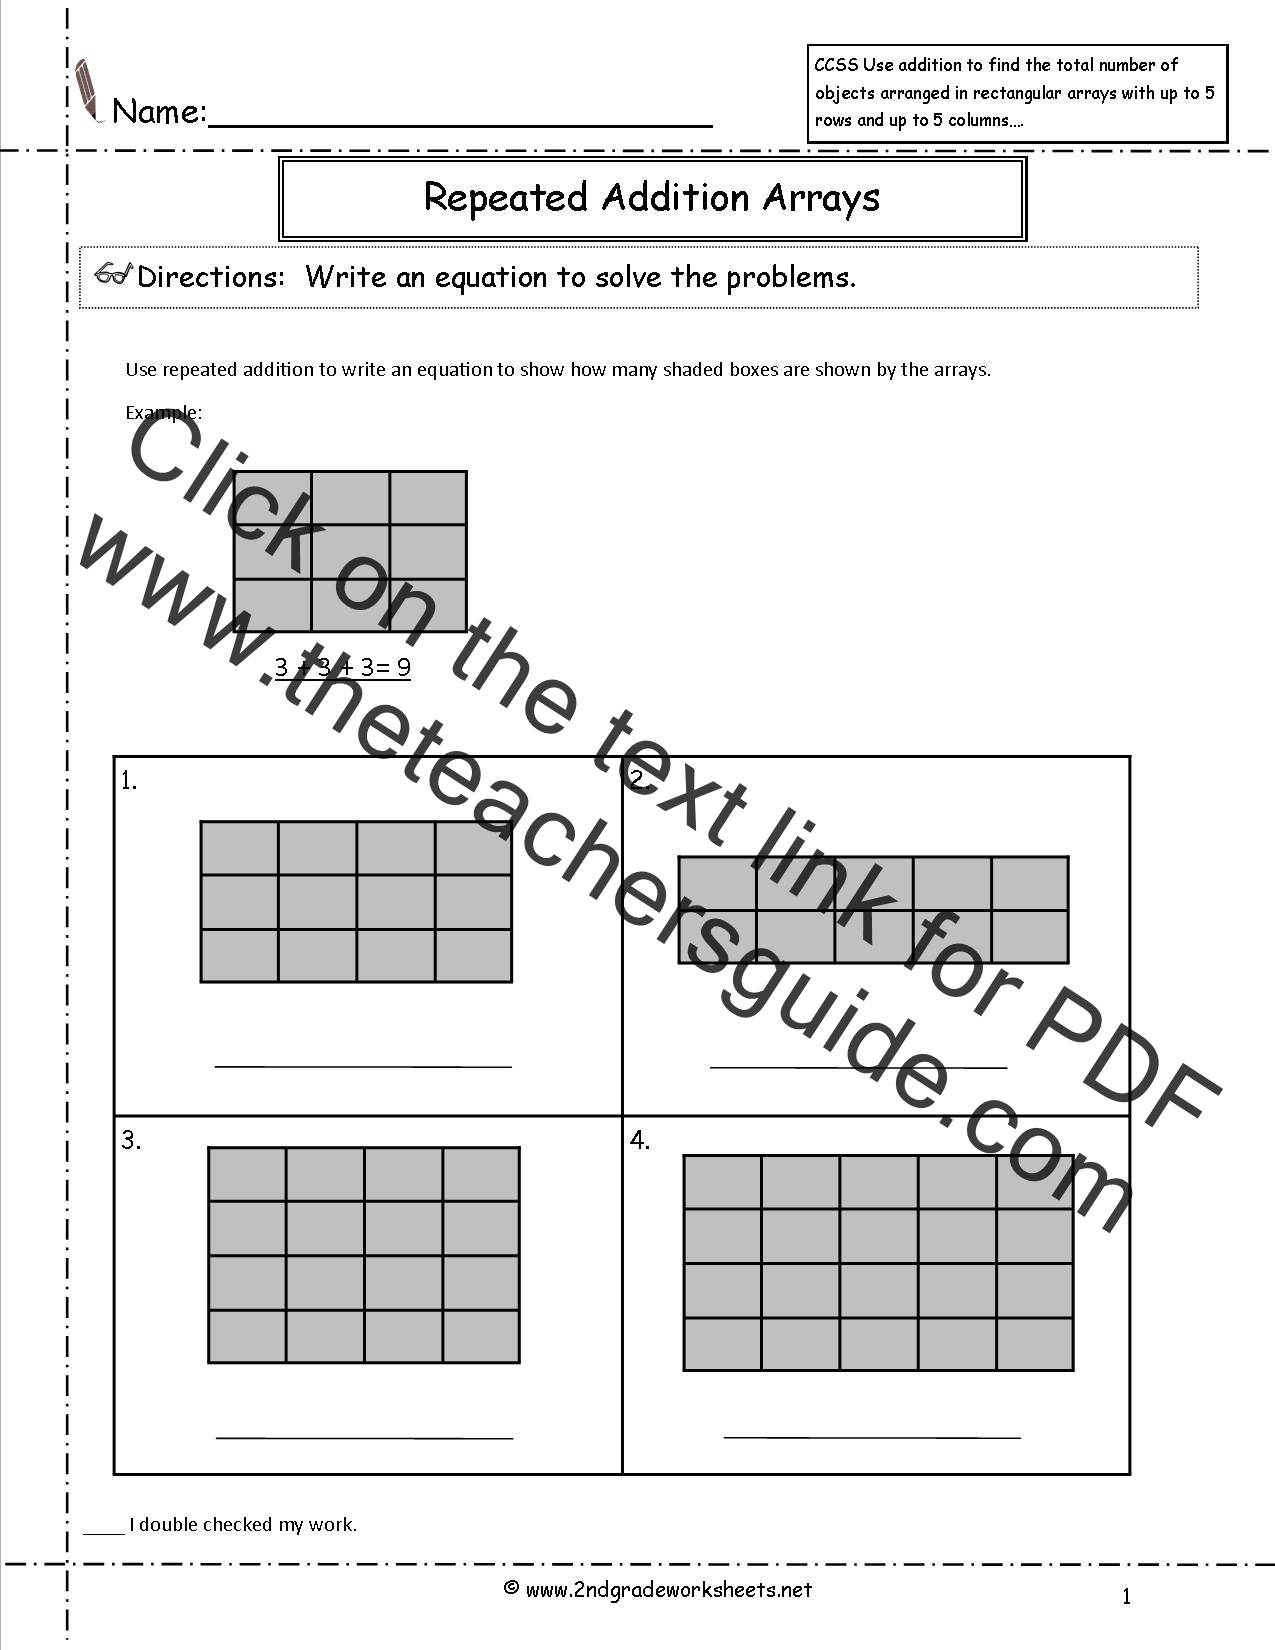 Worksheets Equal Groups Multiplication Worksheets ccss 2 oa 4 worksheets repeated addition arrays worksheet